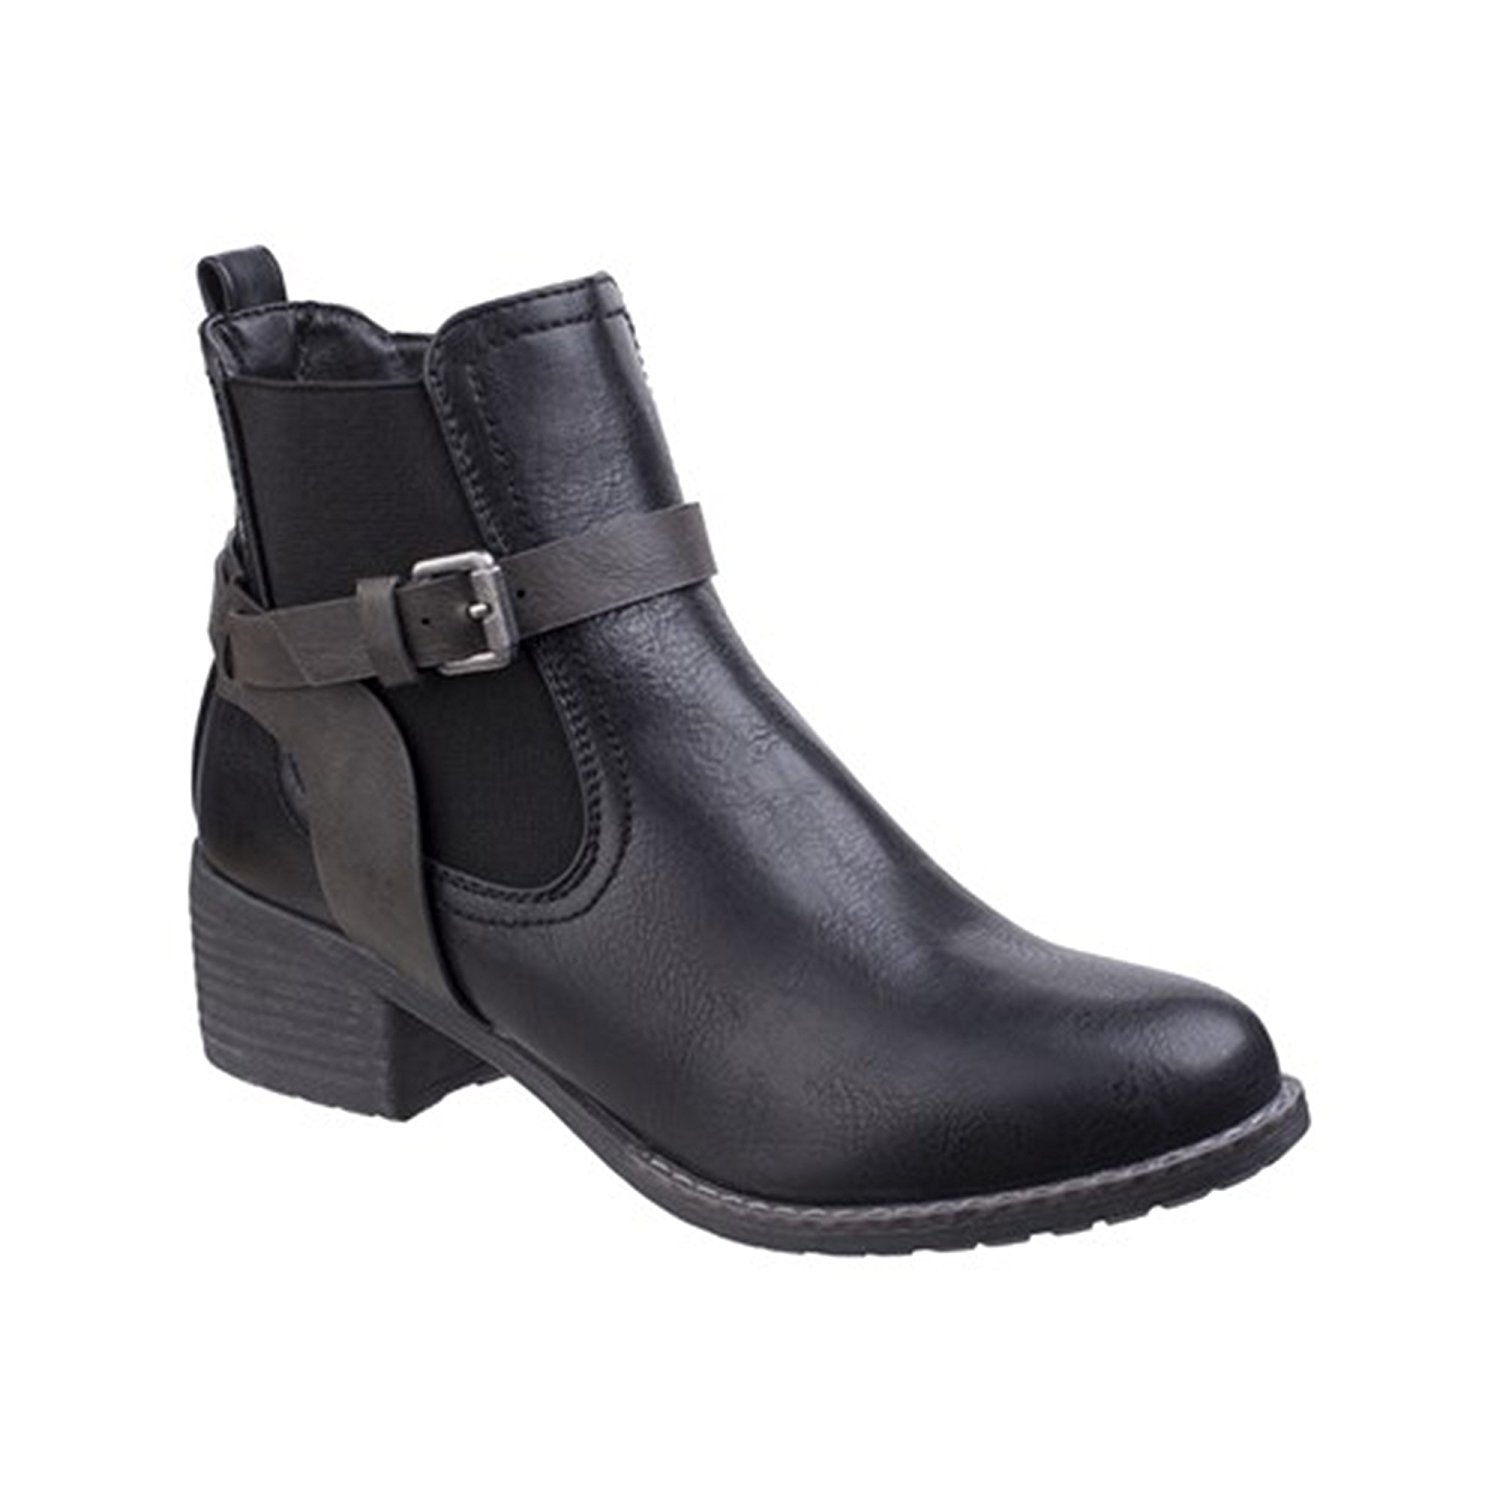 Divaz Womens//Ladies Megan Chelsea Shoe Boots FS5161